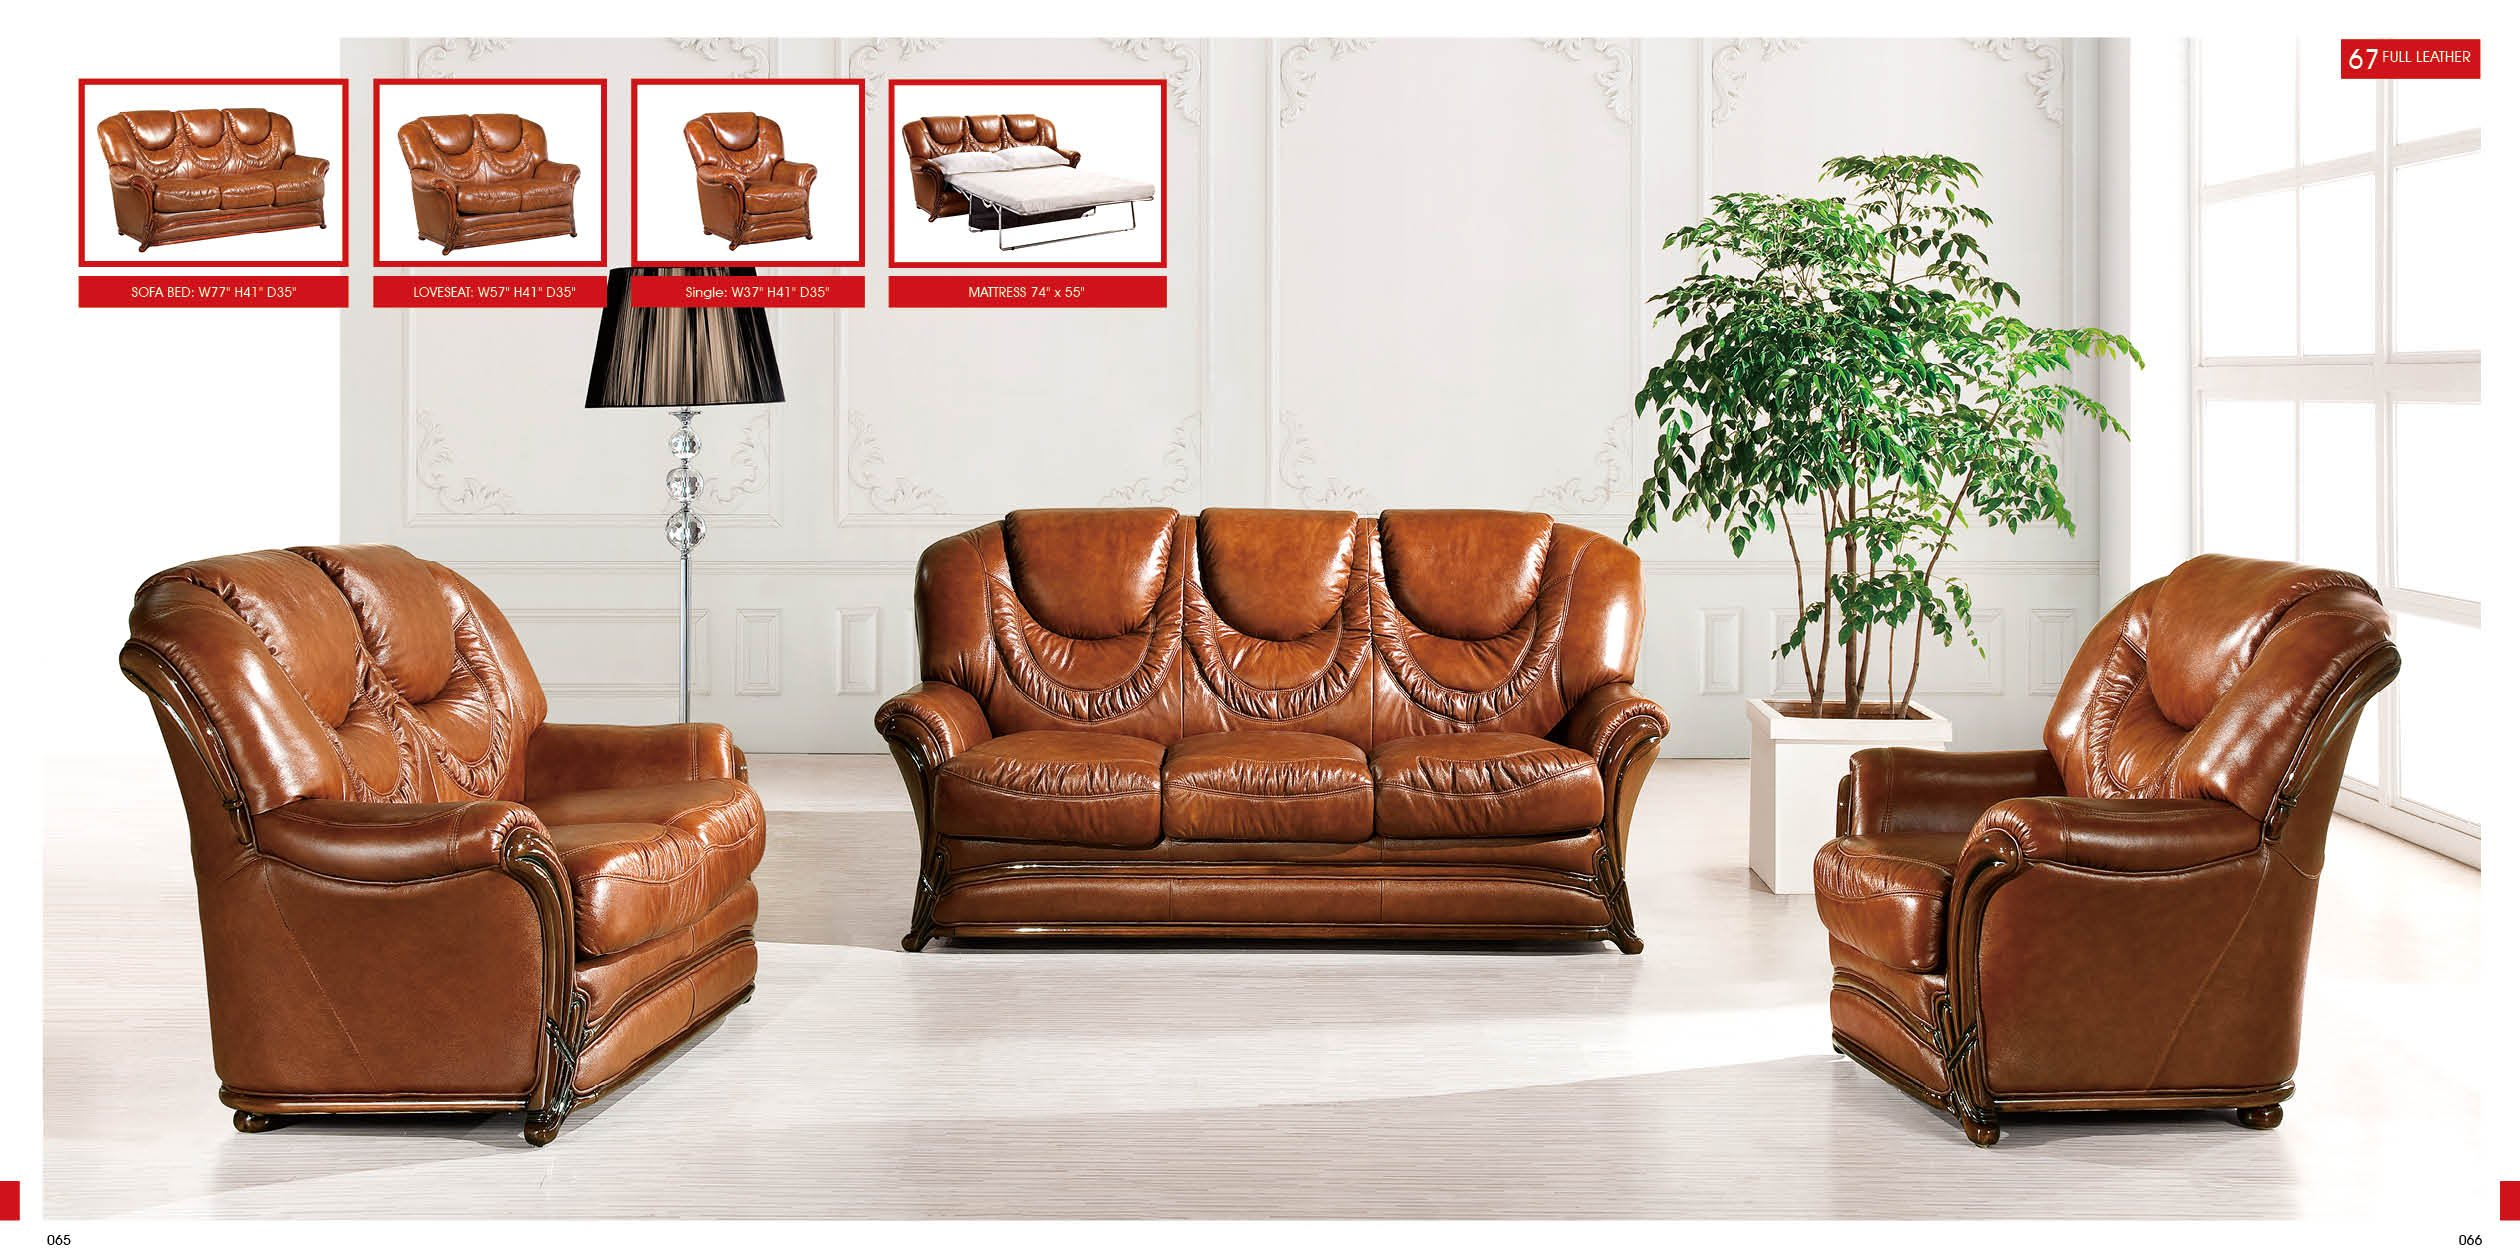 ESF Modern 67 Full Brown Italian Leather Sofa Set Classic Look by (ESF) European Style Furniture